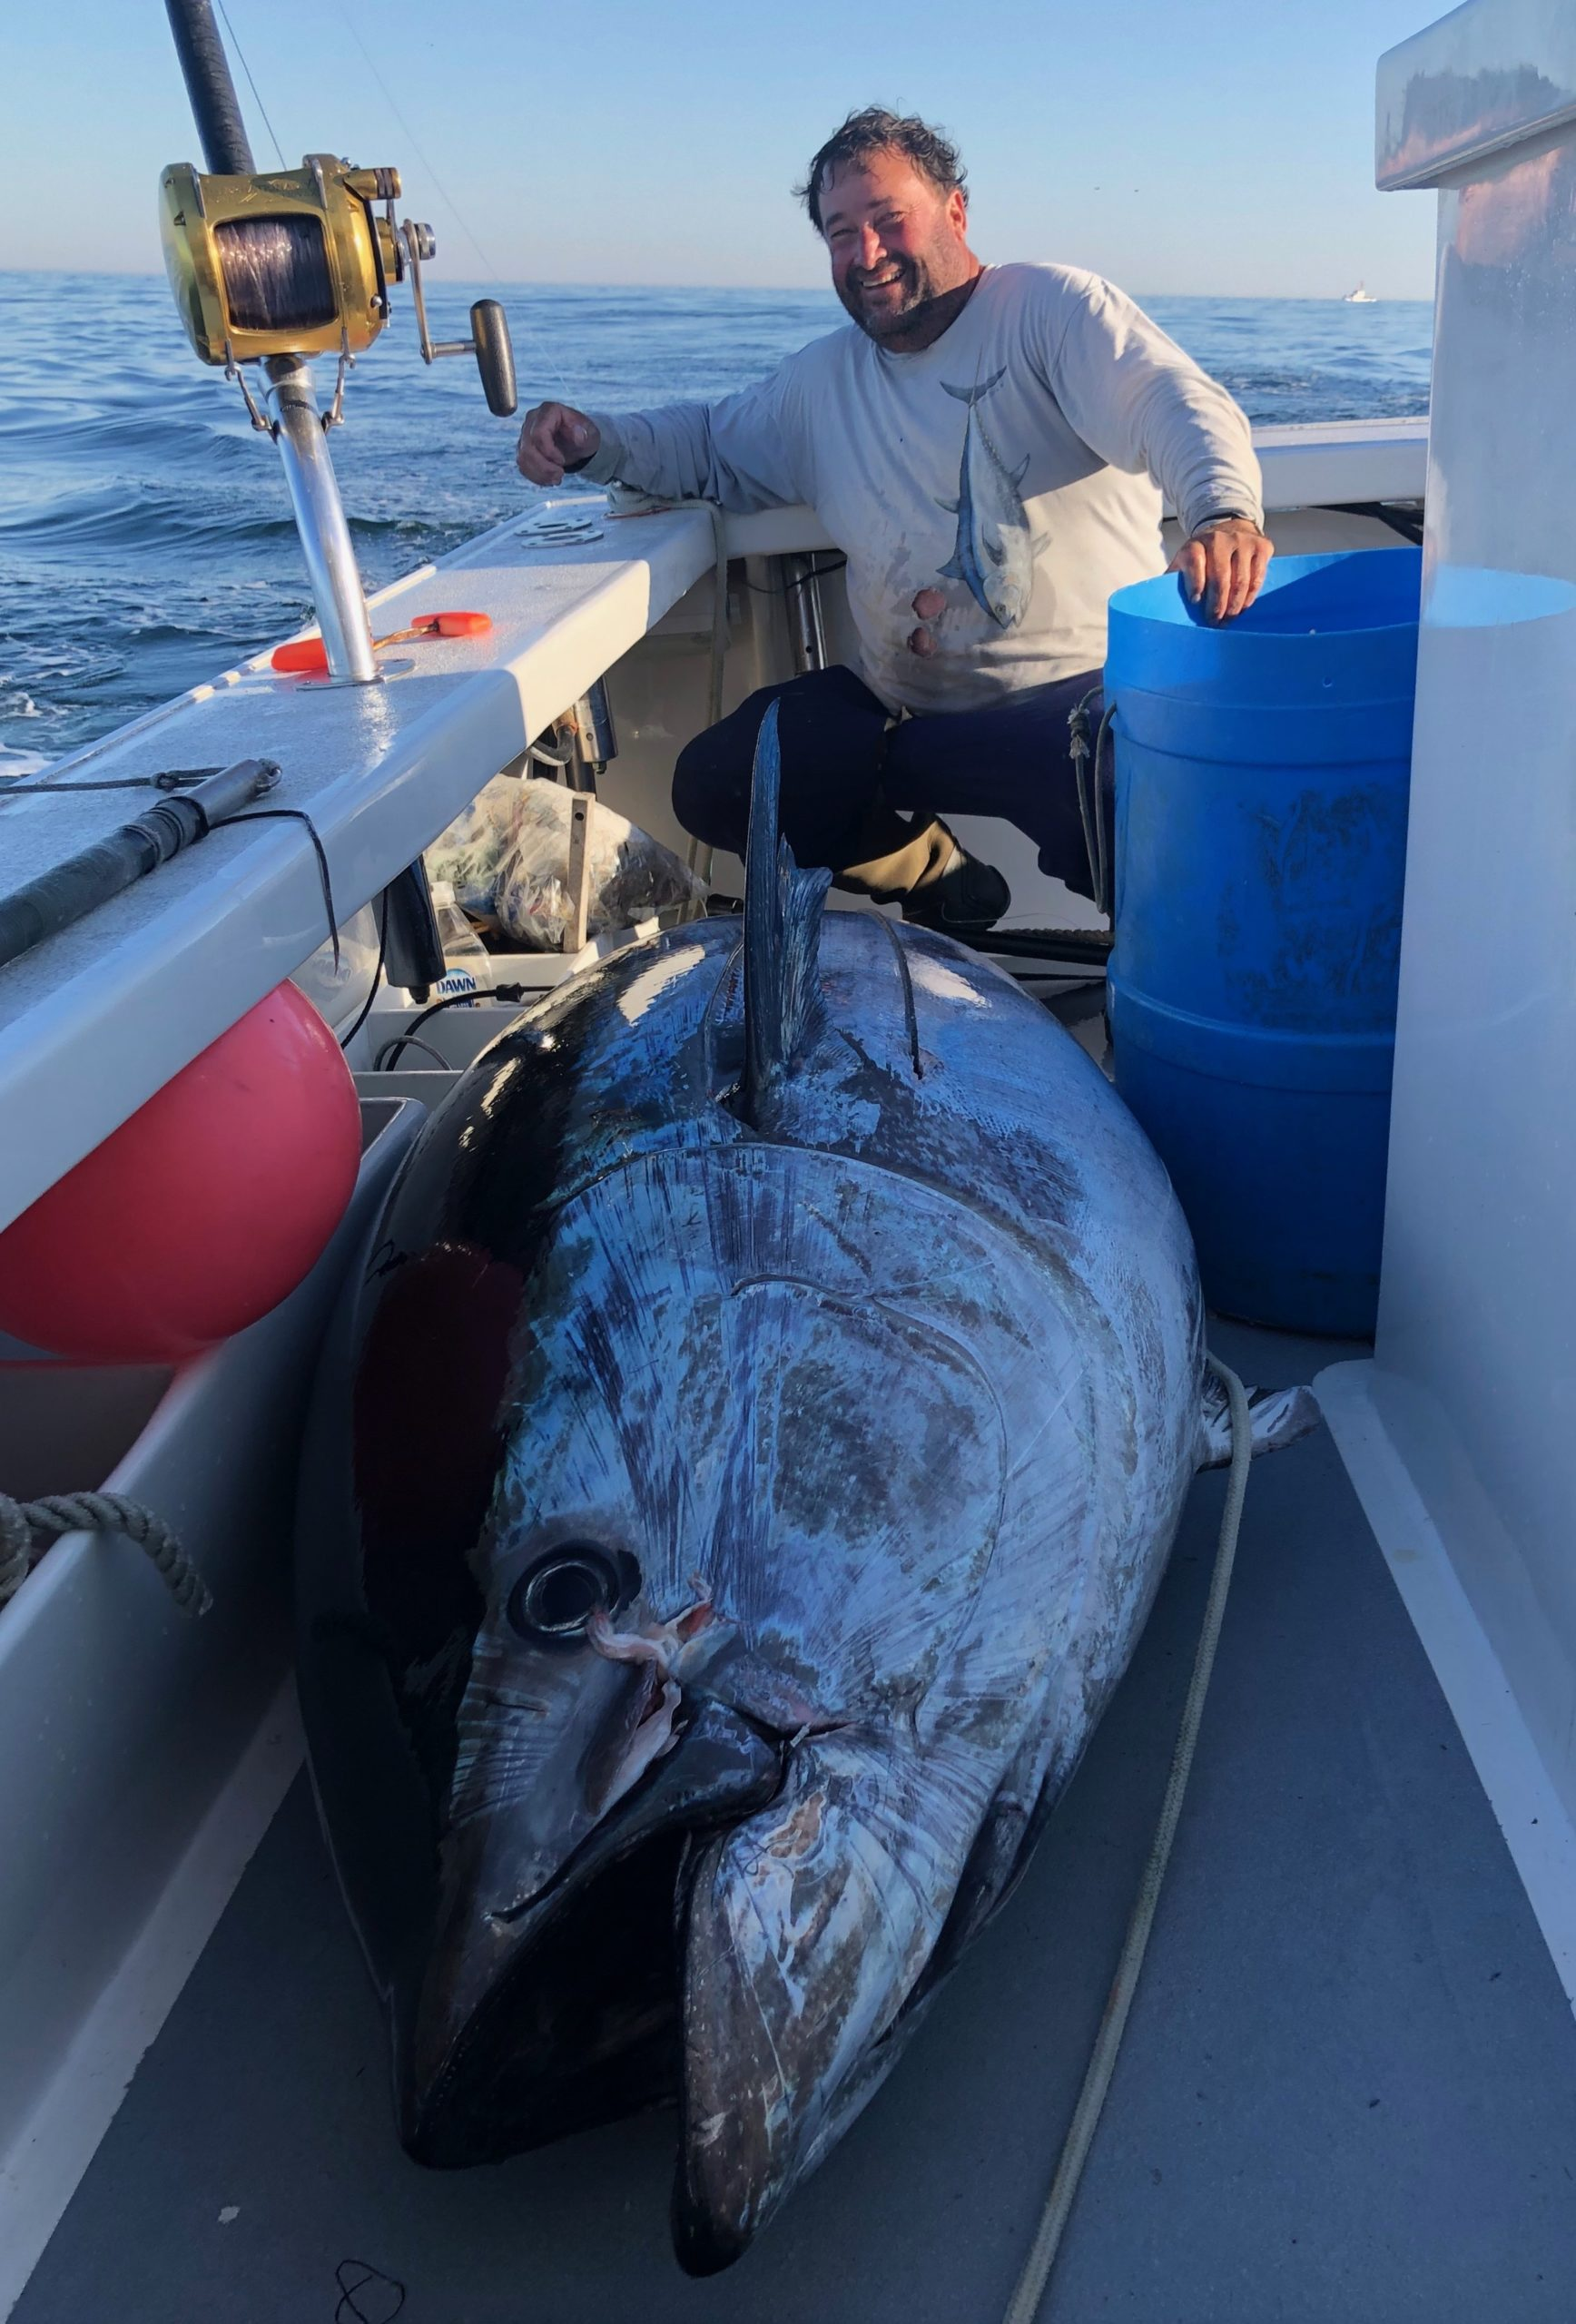 Paul Stern of Montauk and the crew of the Flying Dutchman caught this 700 pound giant bluefin tuna on Sunday.